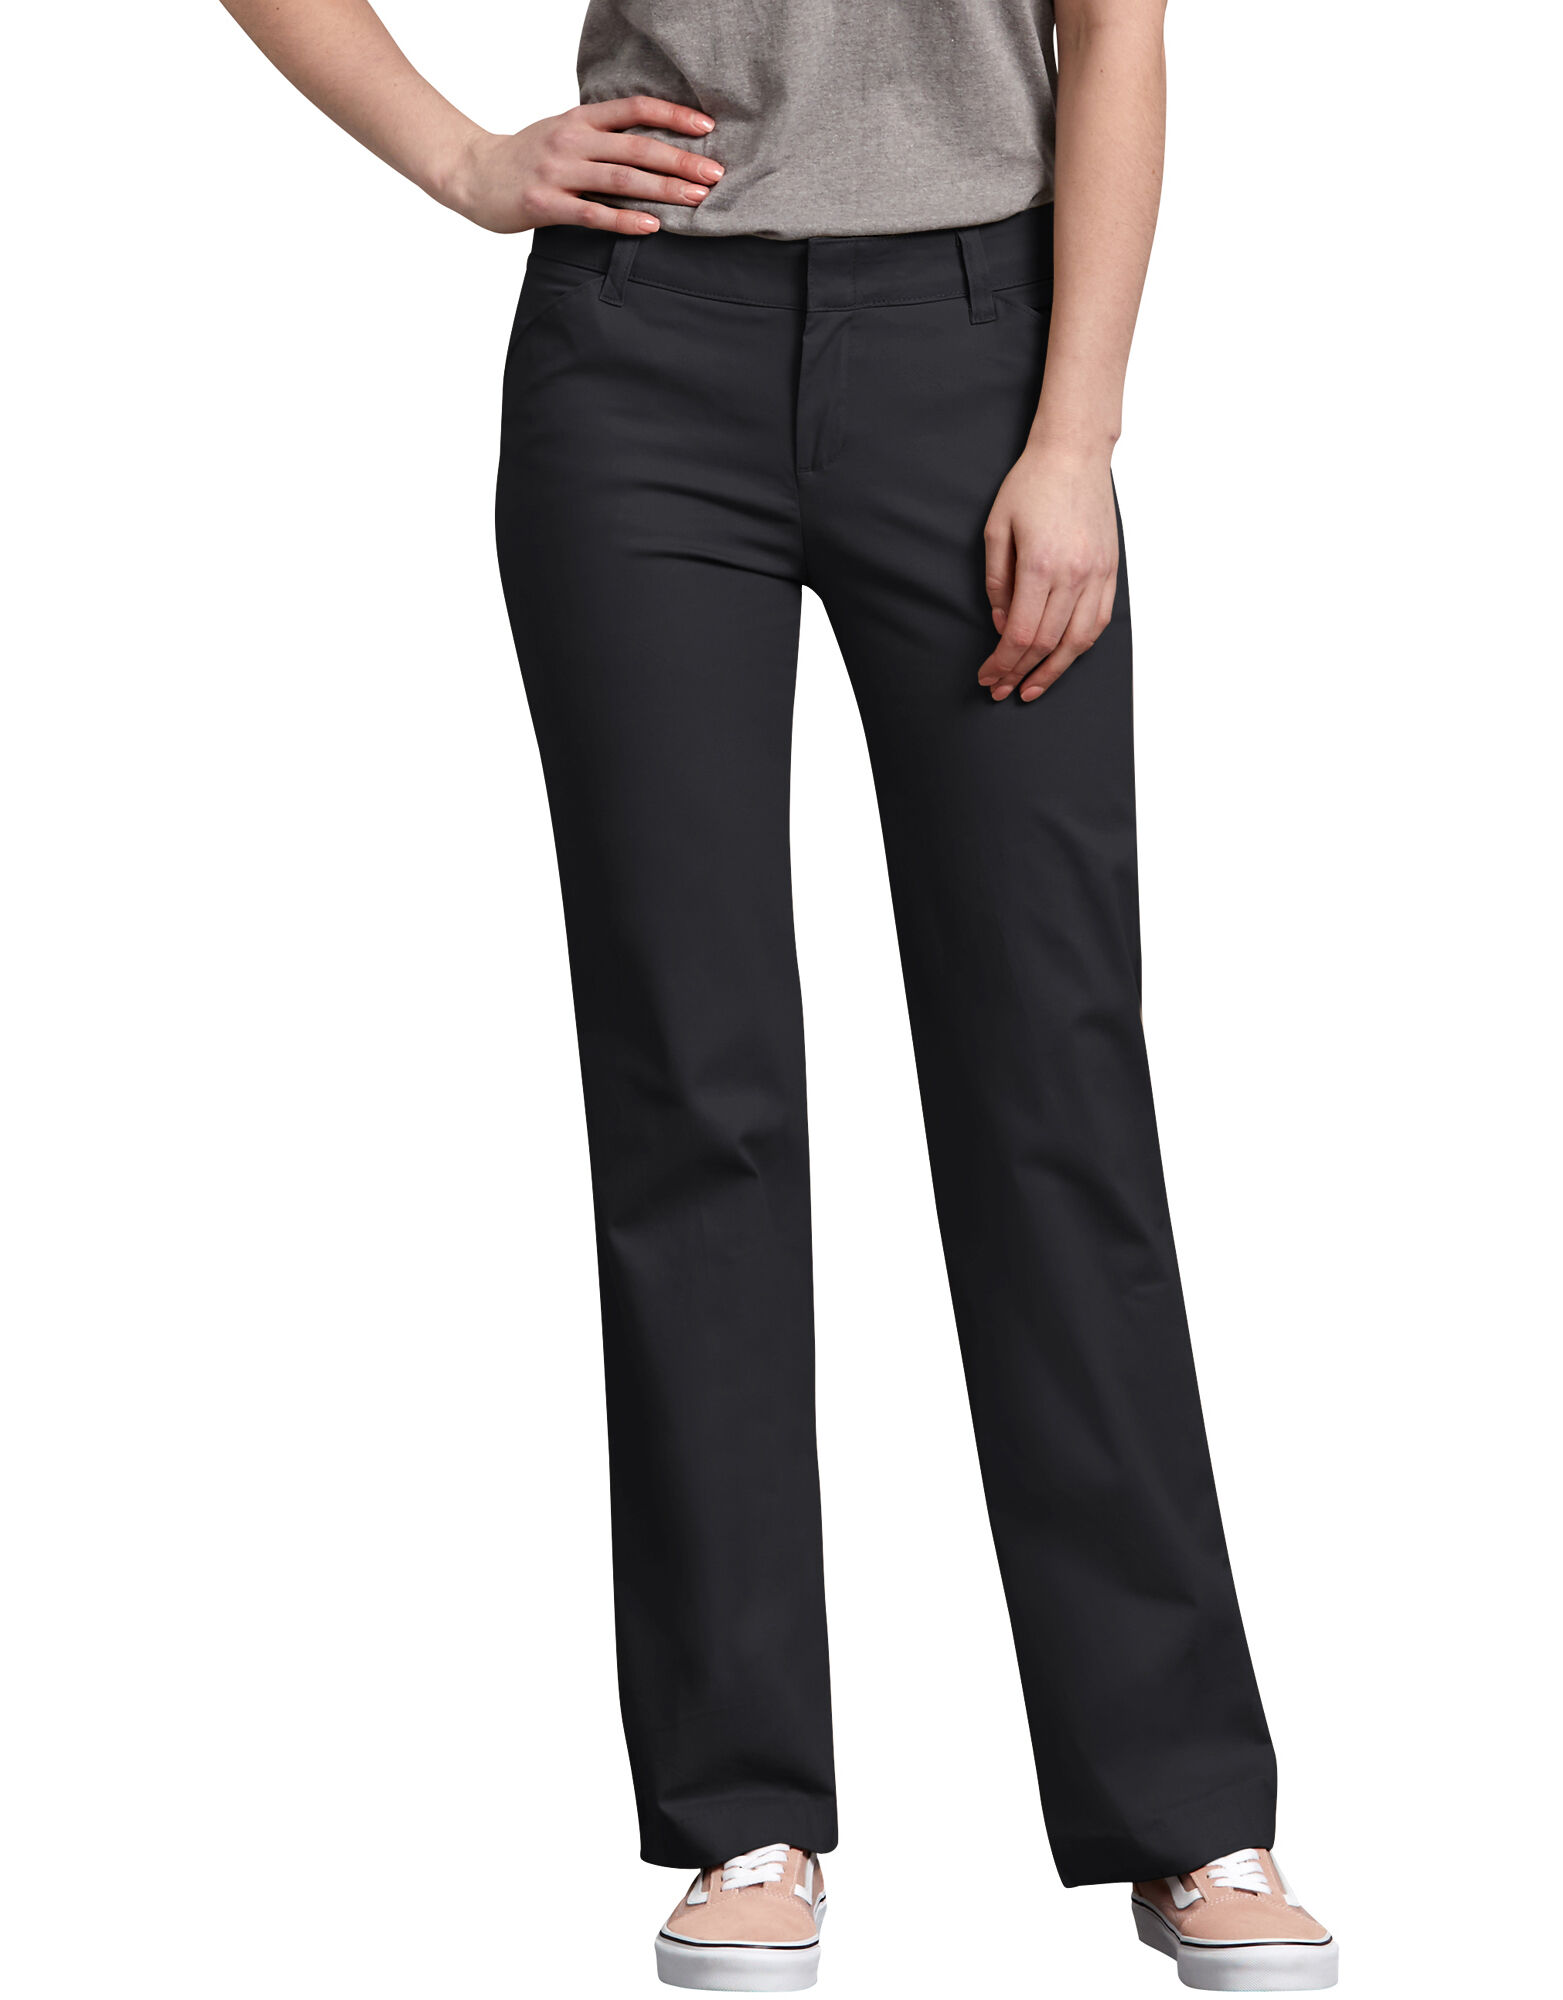 Fantastic DICKIES GIRLS Womens Denim BOOTCUT Flare PANTS Stretch Work School Uniform NA